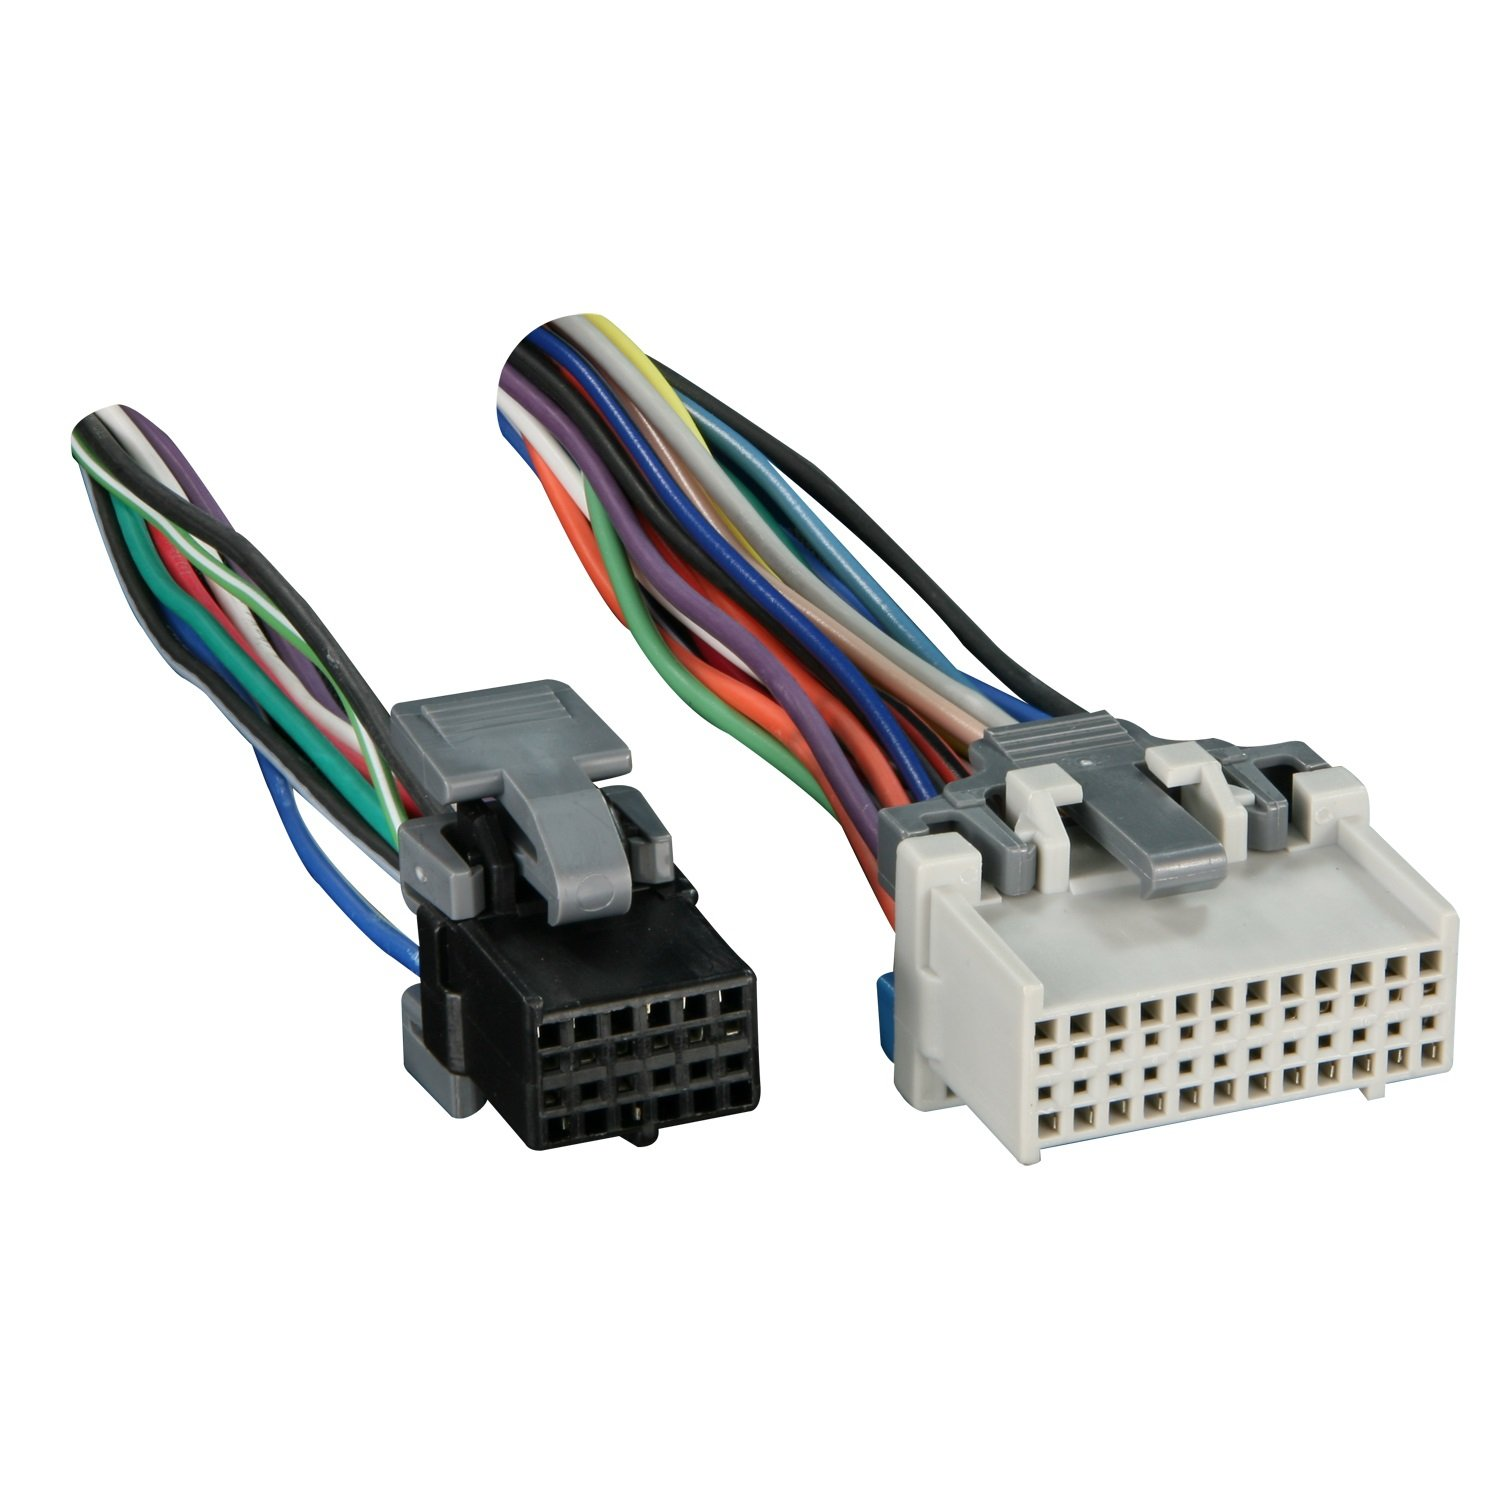 711log4bdML._SL1500_ amazon com metra turbowires 71 2003 1 wiring harness car electronics Delco Radio Wiring Color Codes at edmiracle.co